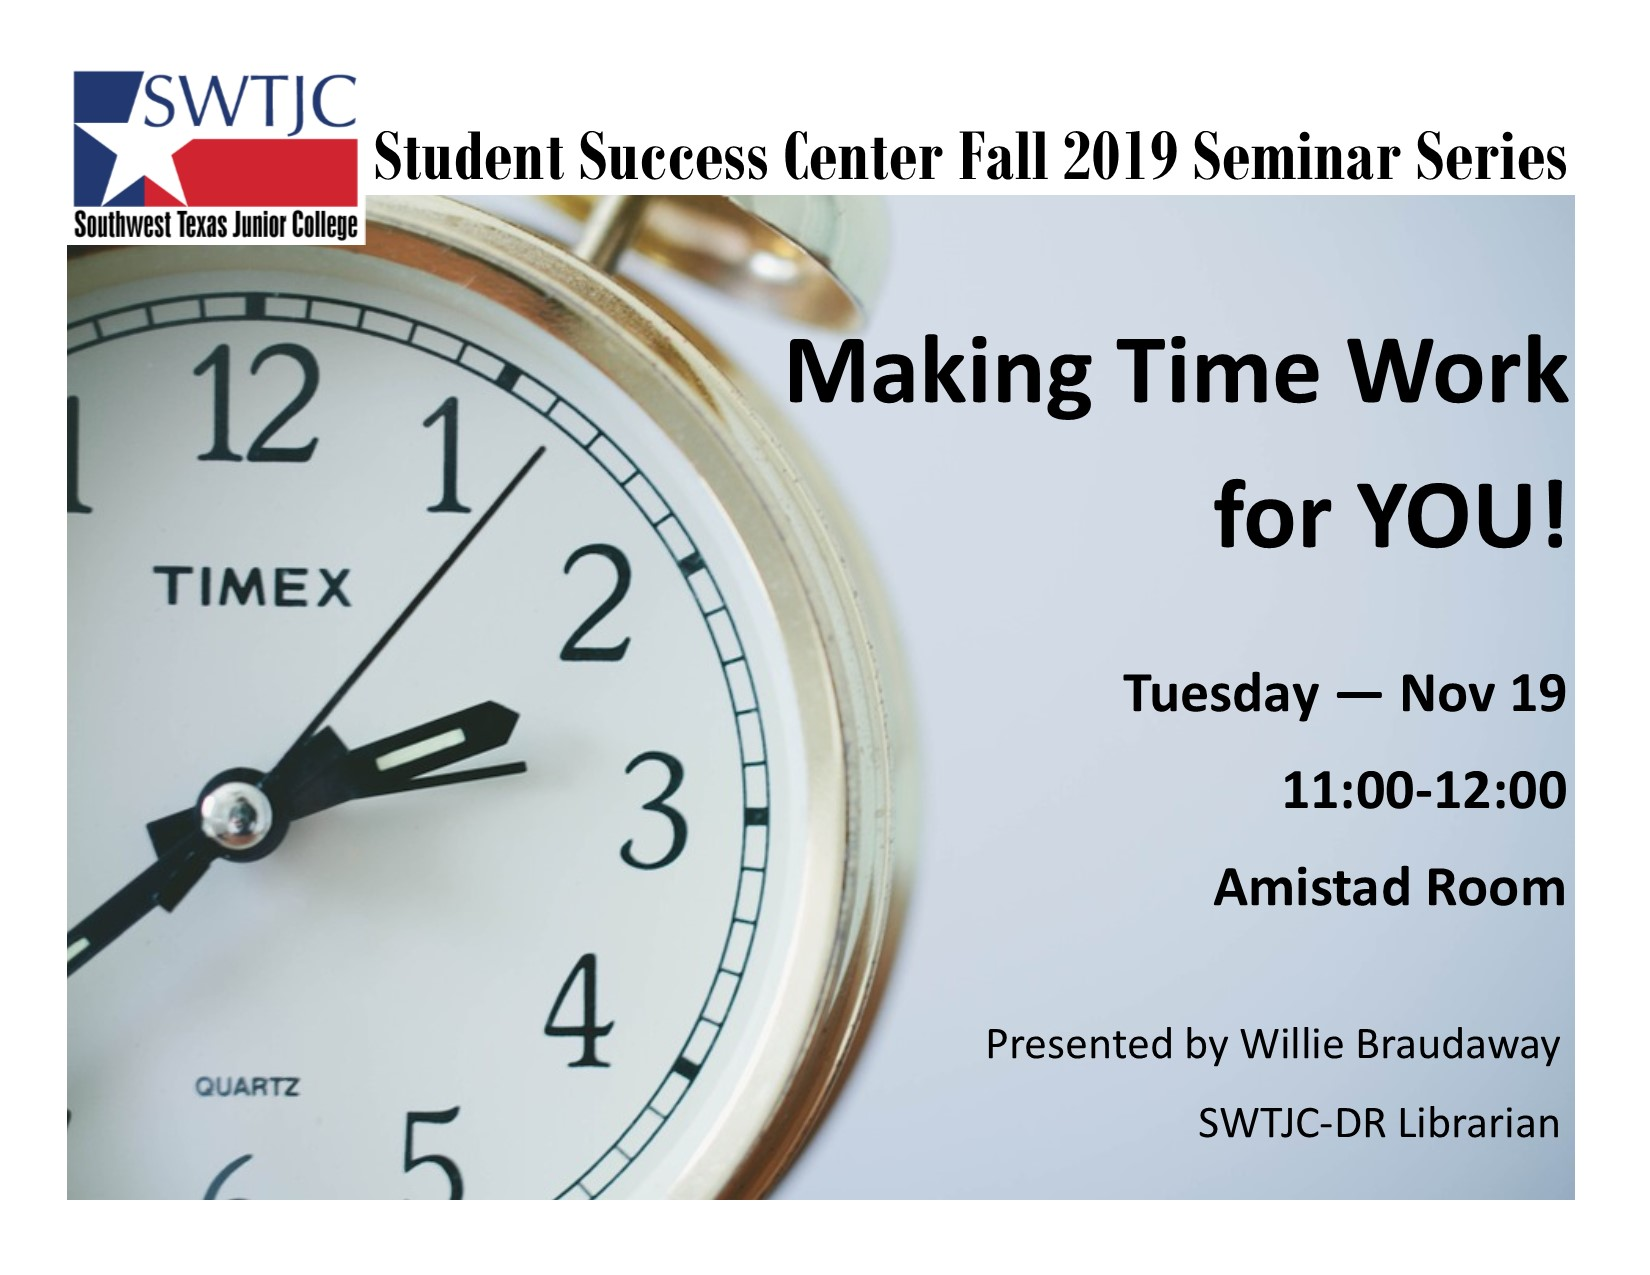 Making Time Work for You Seminar Tues Nov 19 11:00 Amistad Room